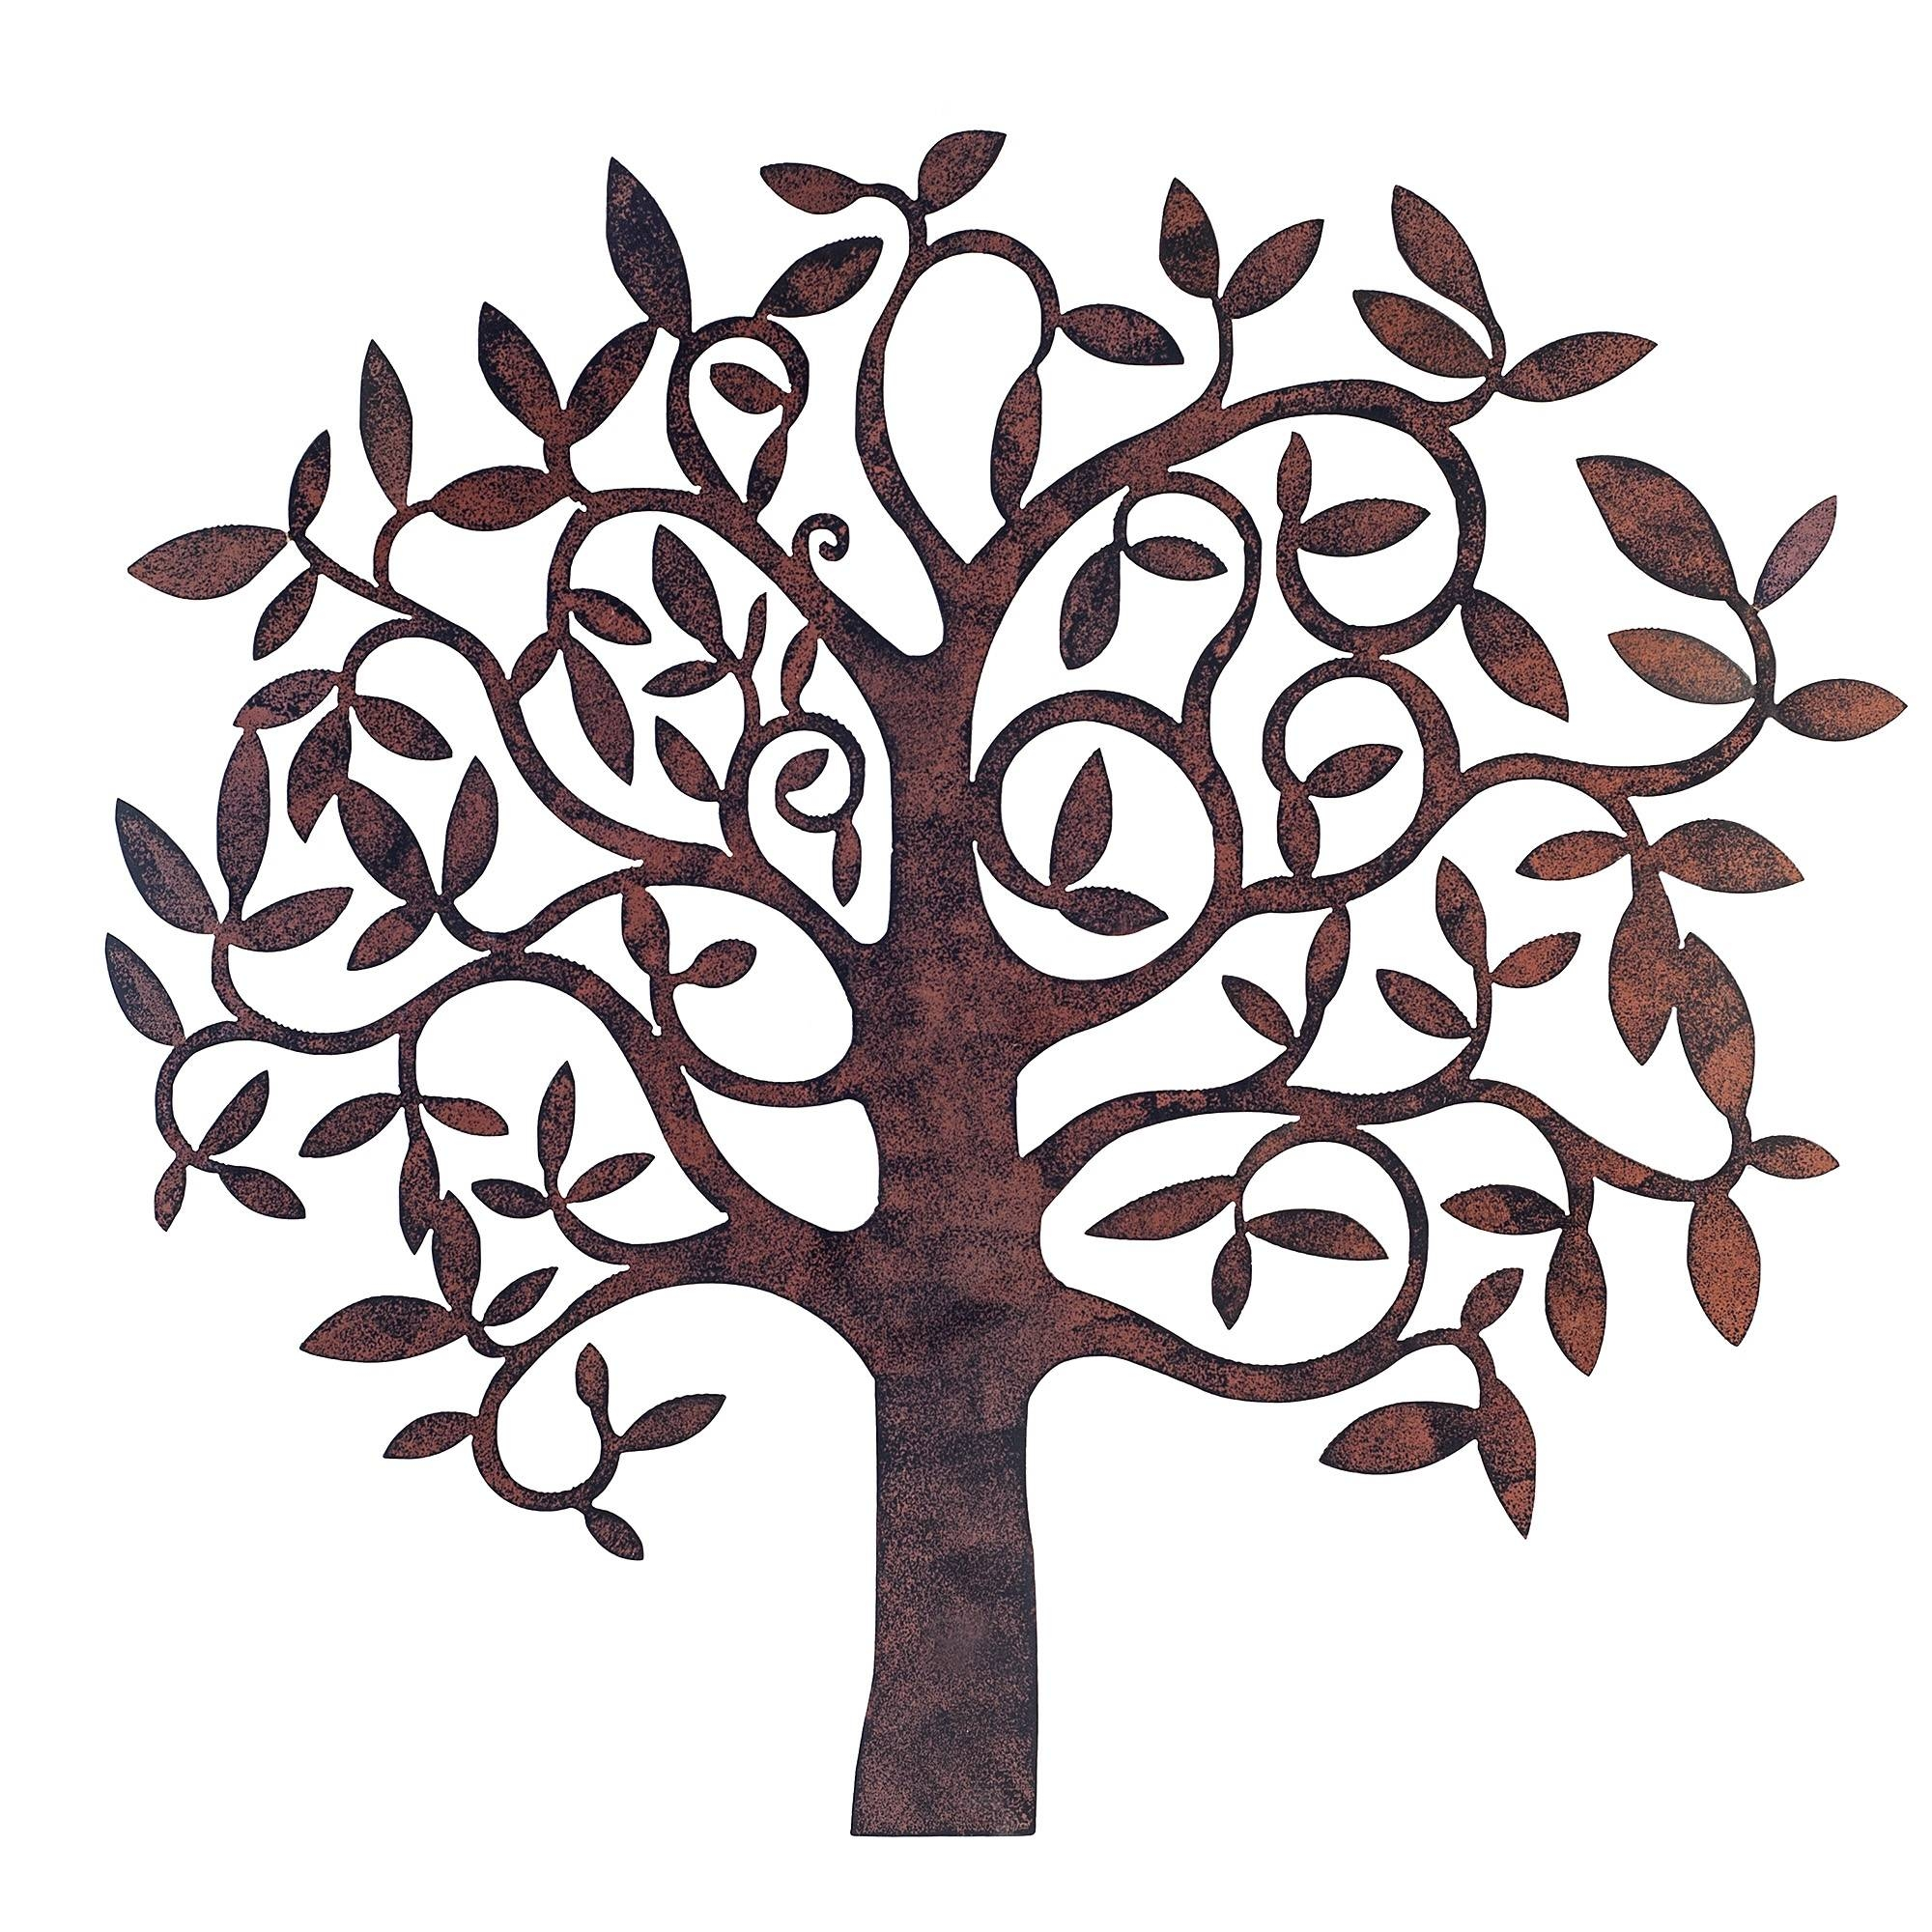 Stupendous Large Metal Tree Wall Decoration 64 Casa Cortes In Newest Large Metal Wall Art For Outdoor (View 16 of 20)